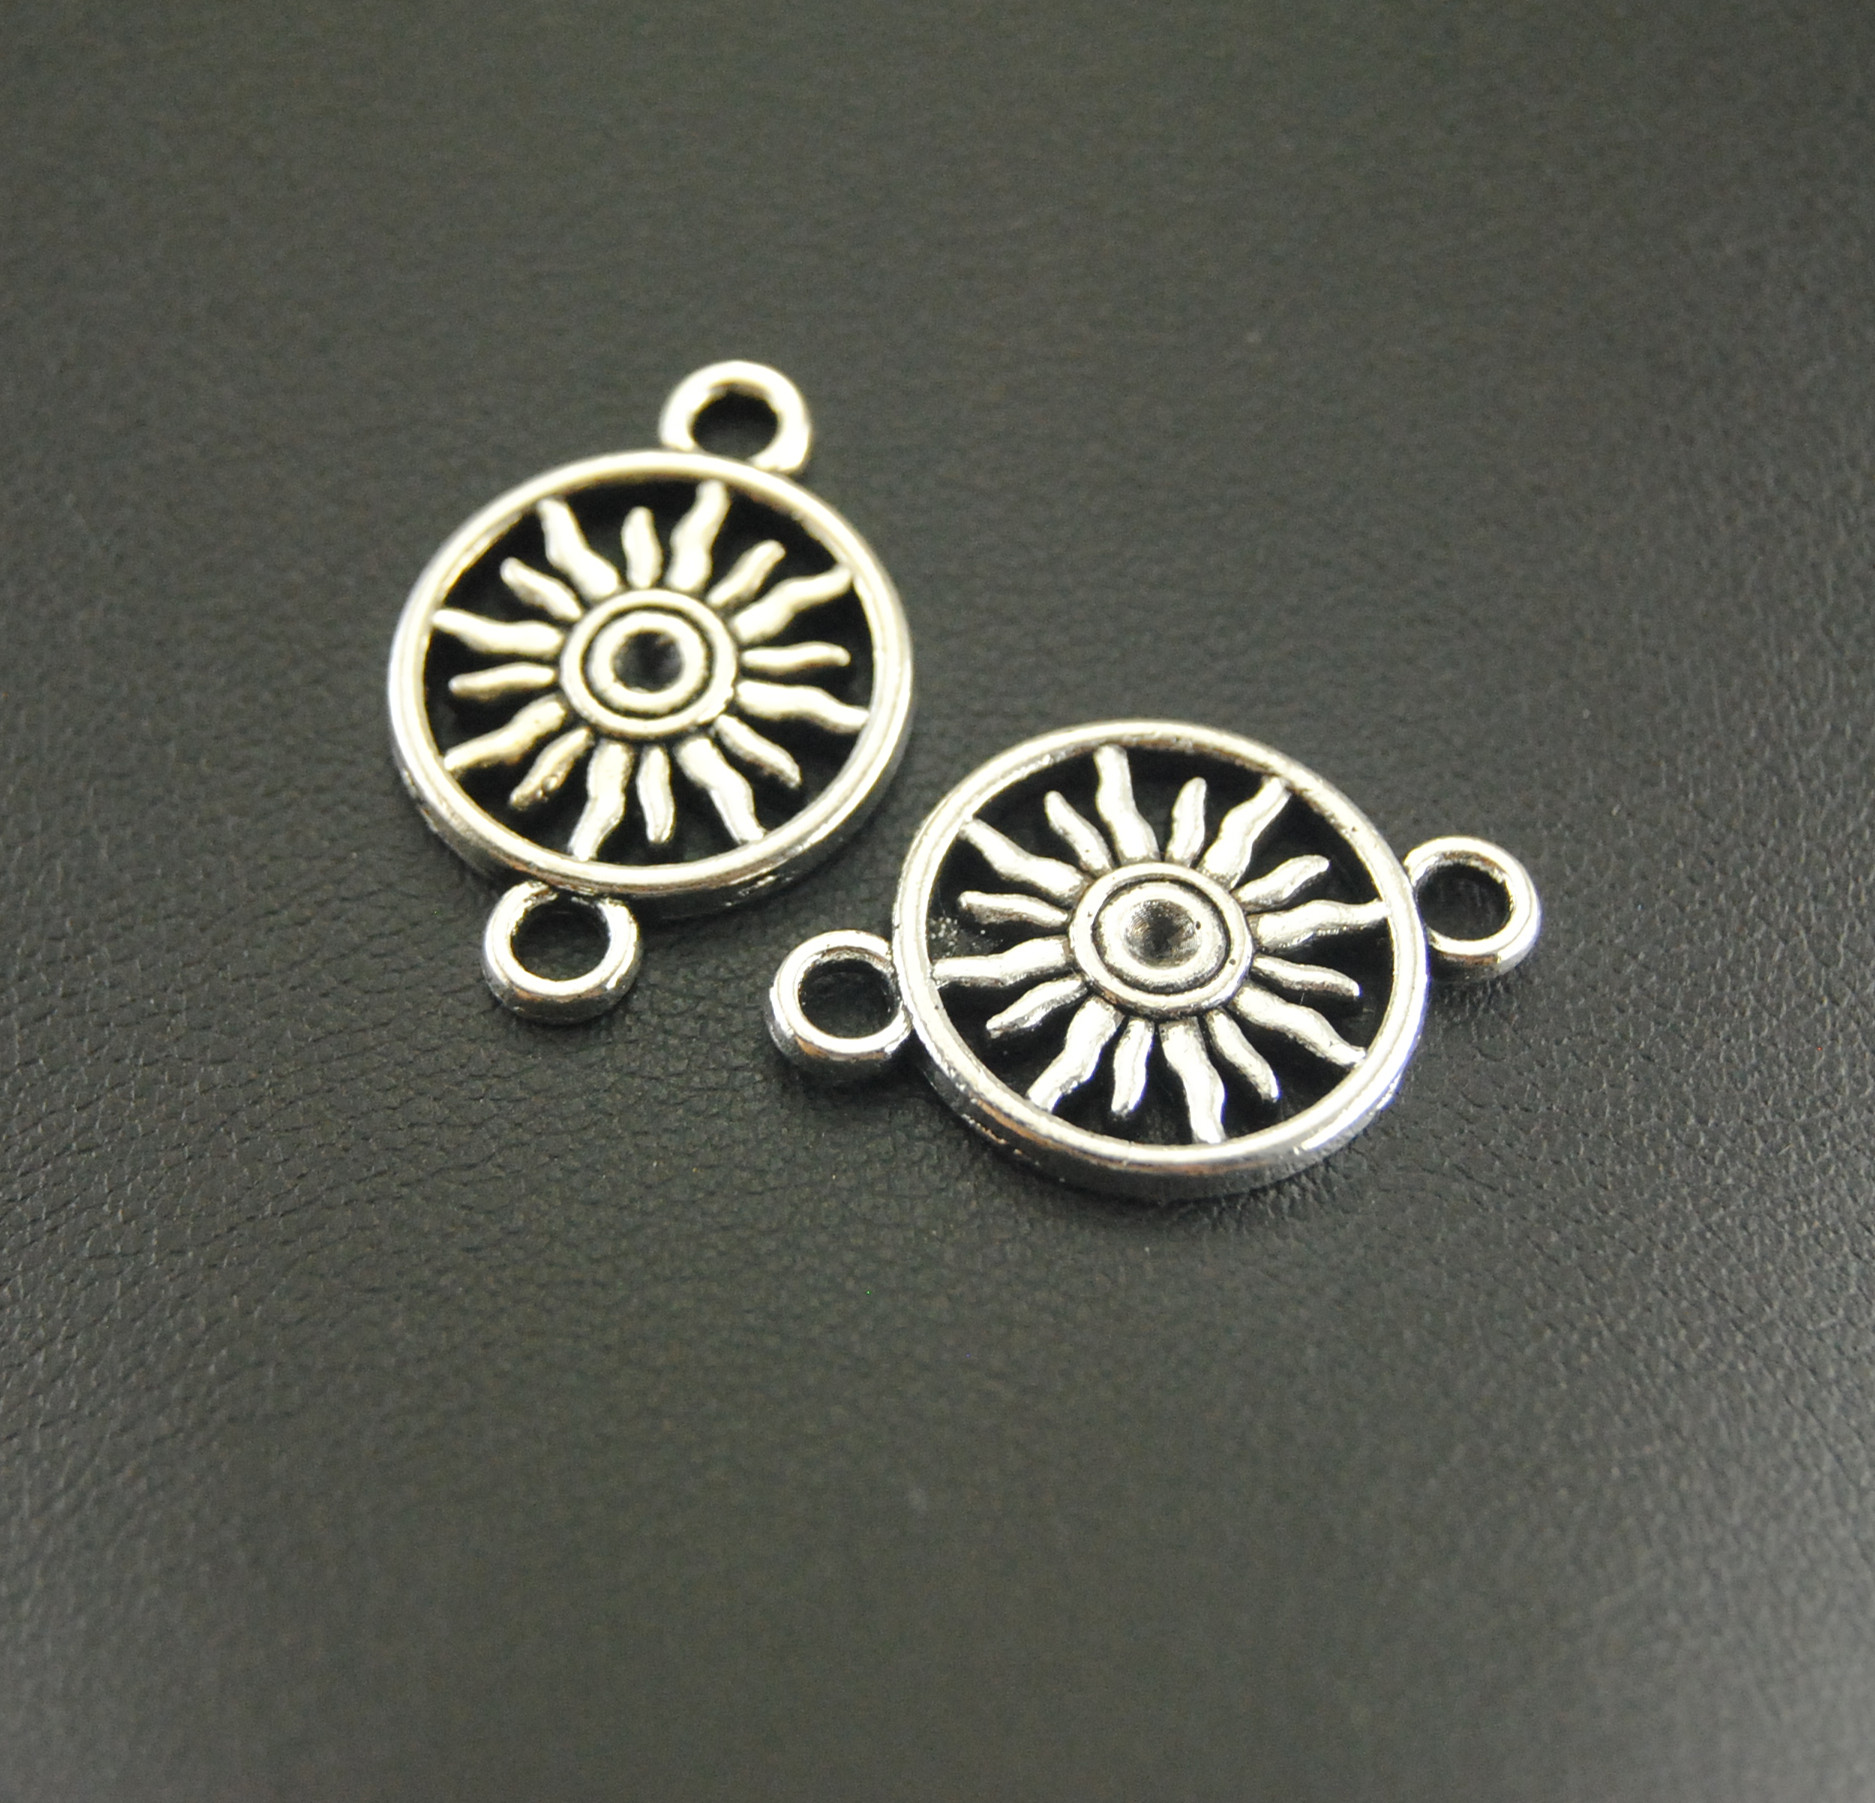 10Pcs Antique Silver Sun Charm Jewelry Making DIY Handmade Craft A856